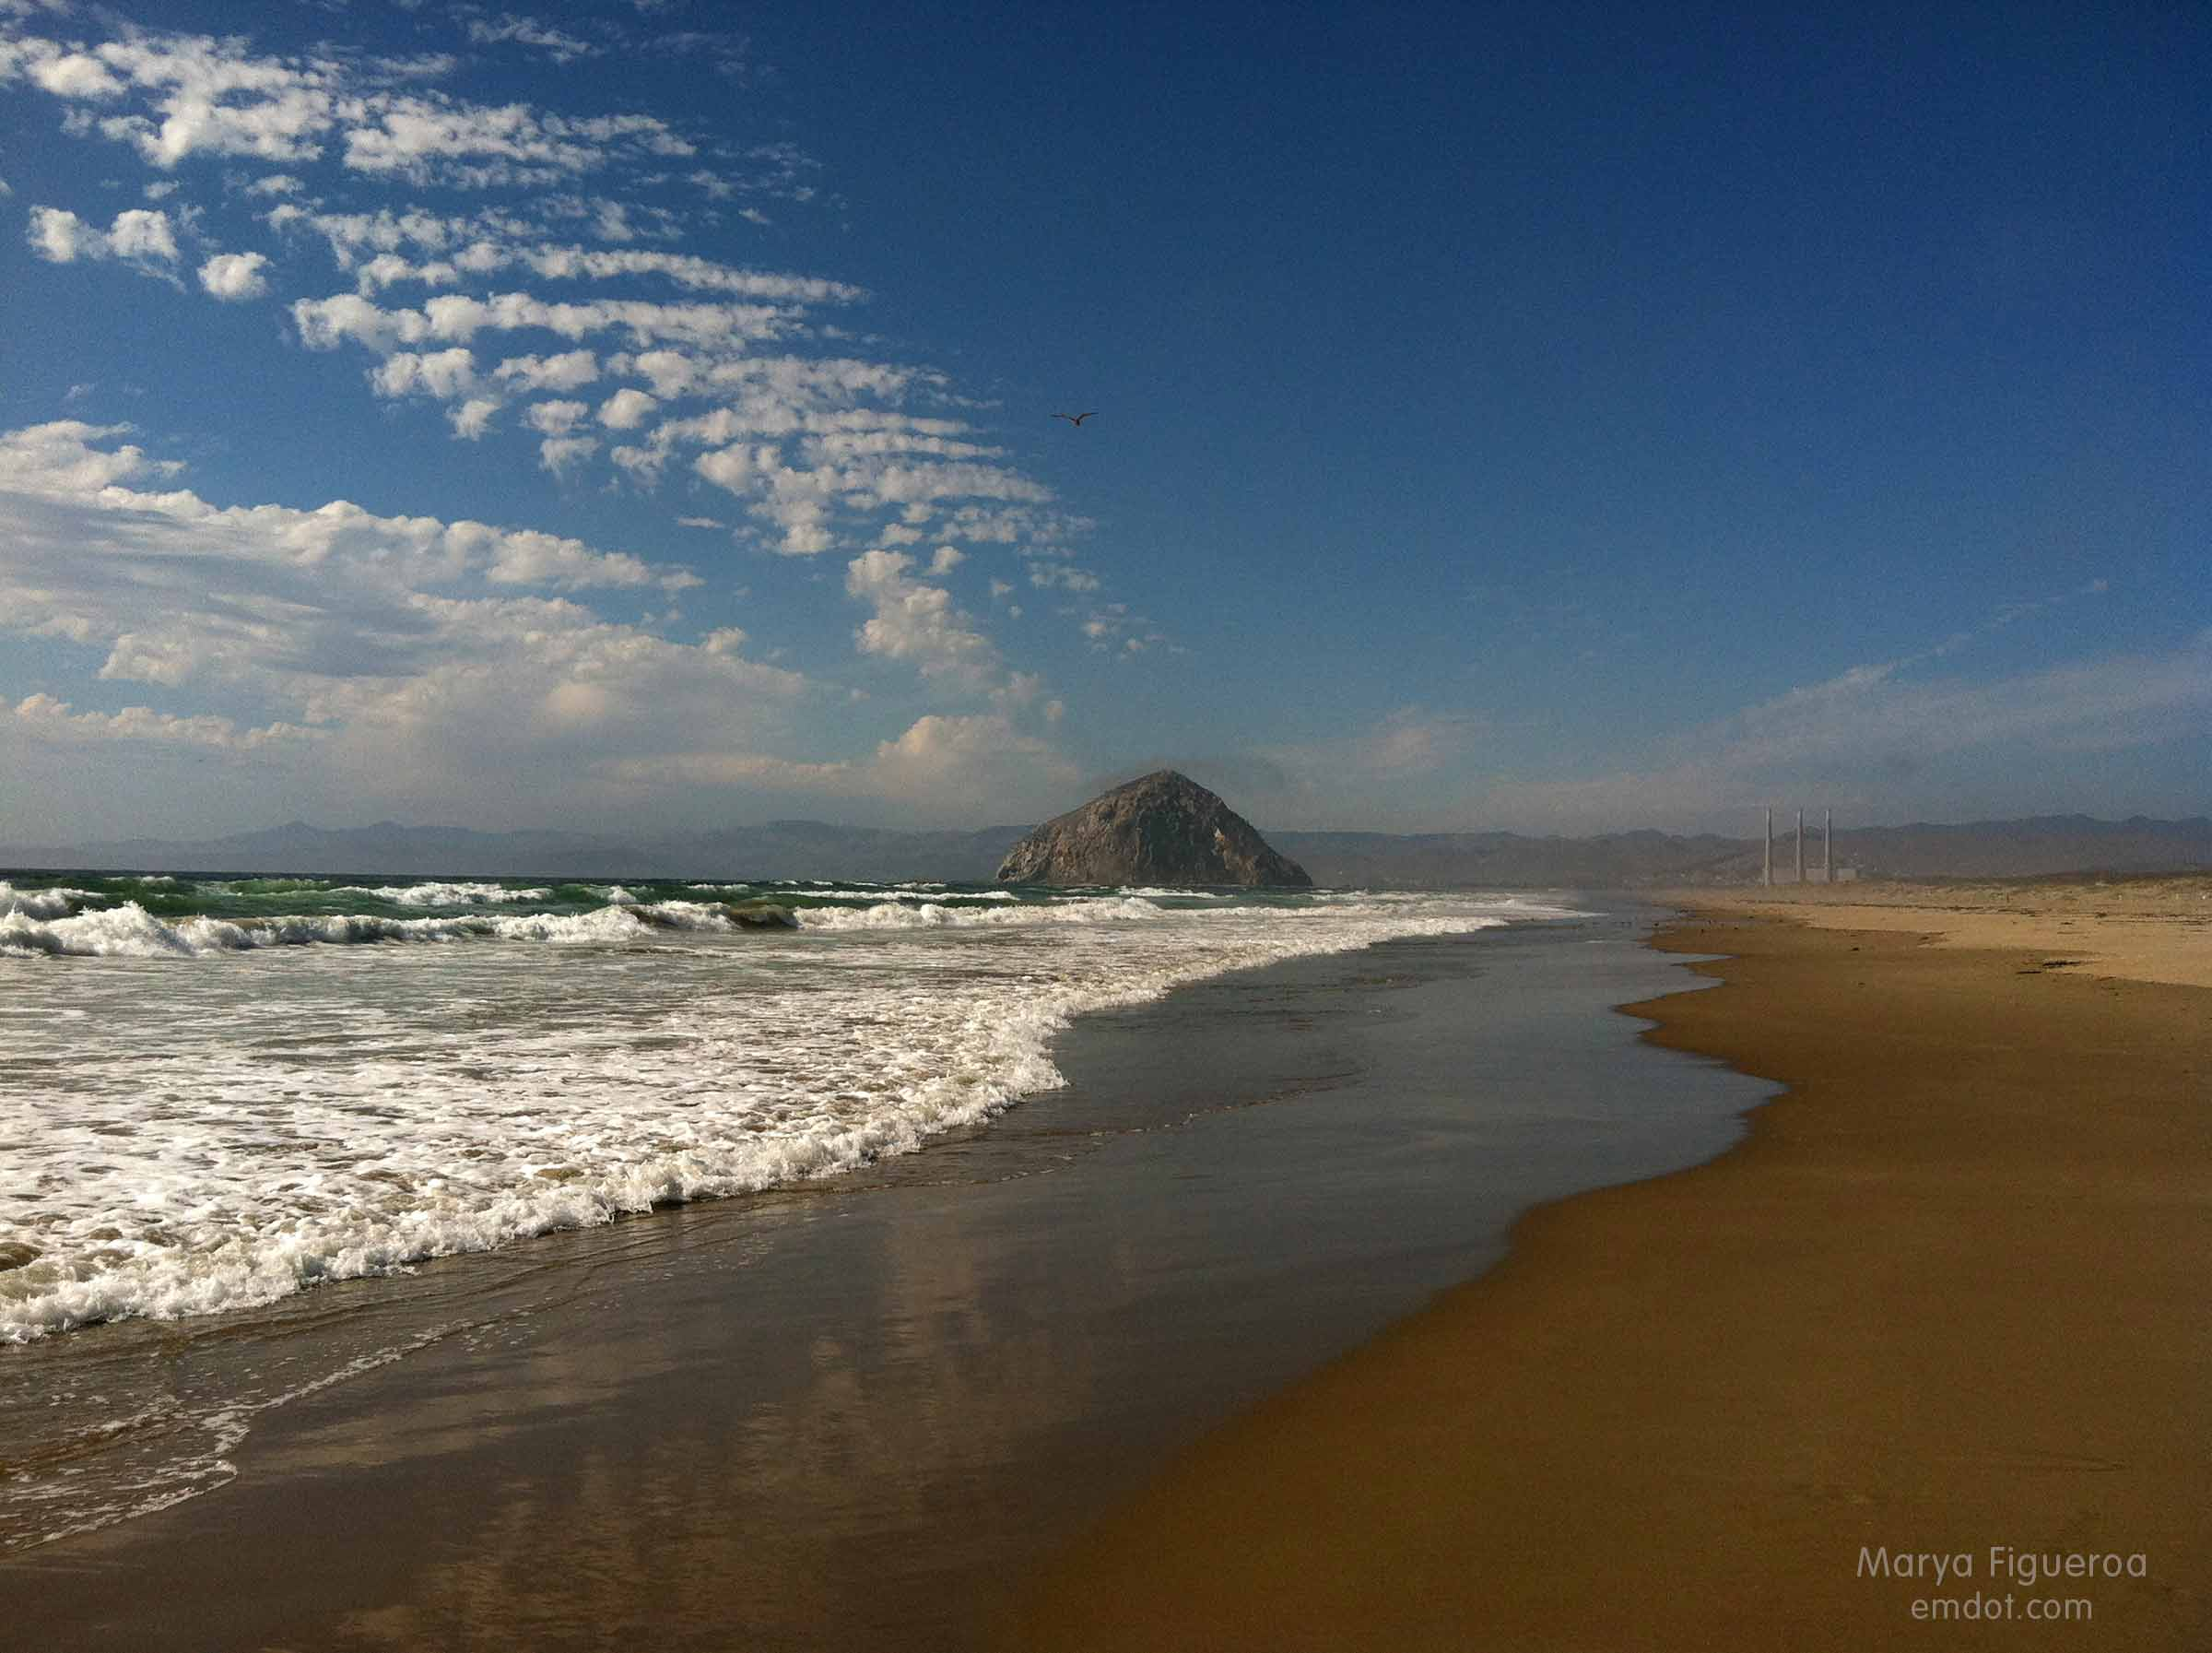 sand spit view of Morro Rock